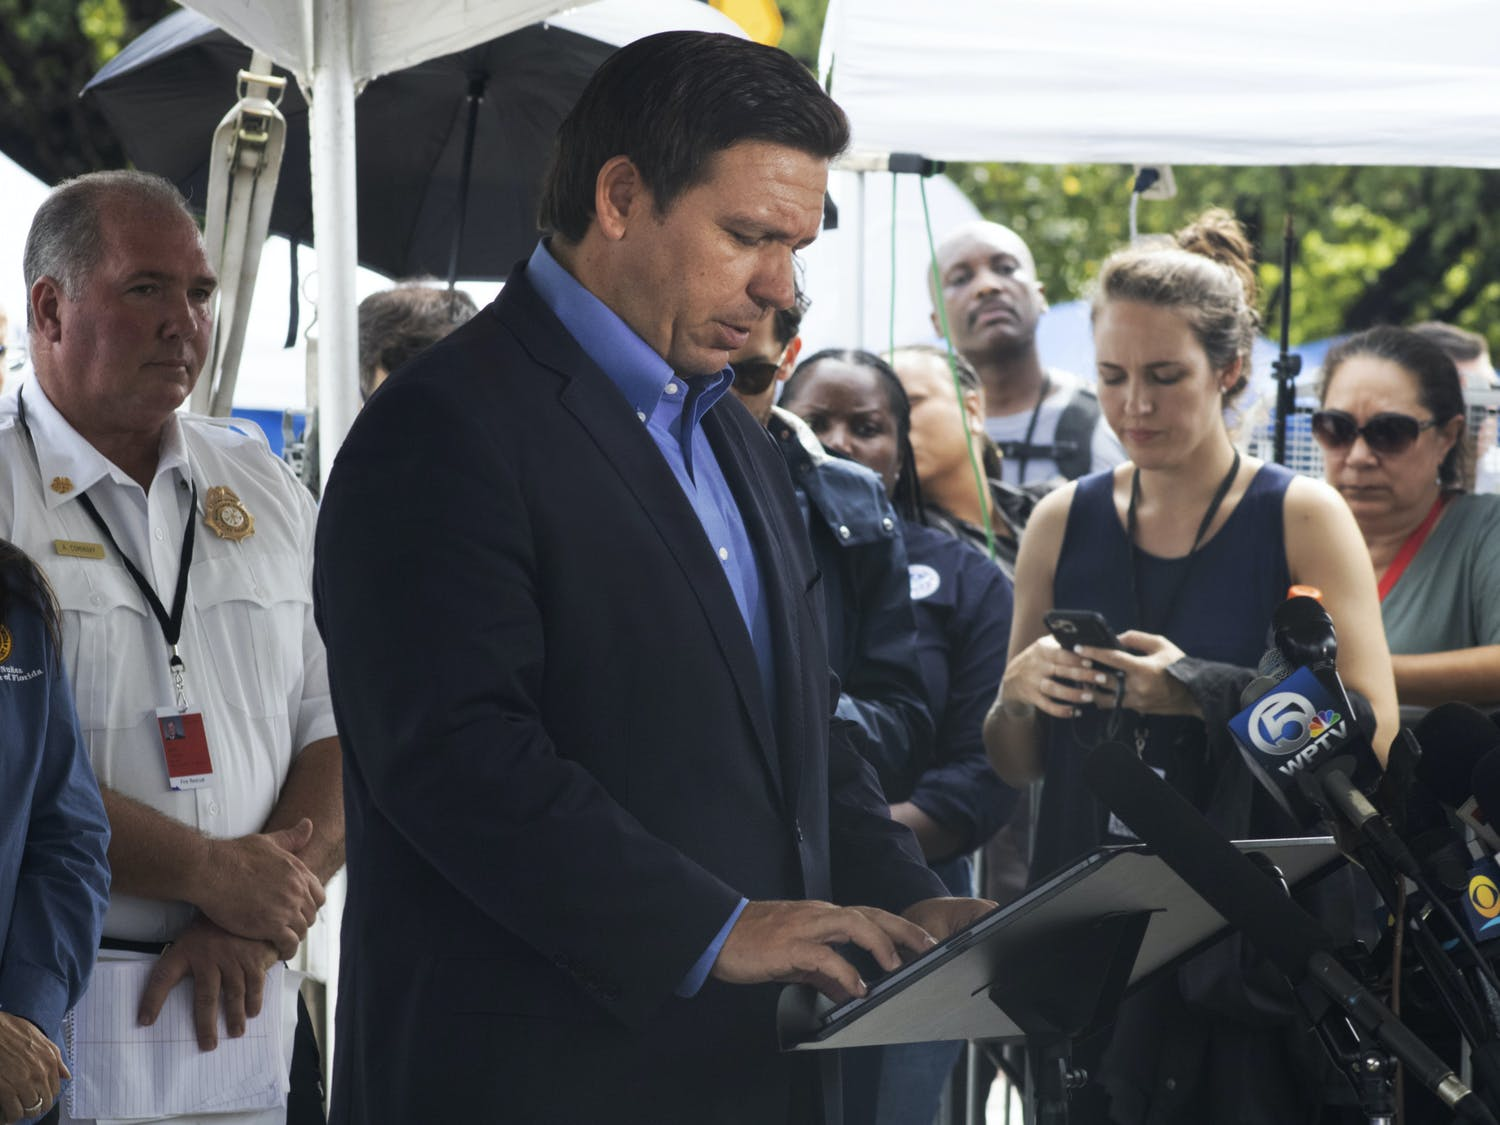 Gov. Ron DeSantis looks down at his notes as he speaks to a crowd of reporters in Surfside, Florida on Thursday, July 1, 2021.